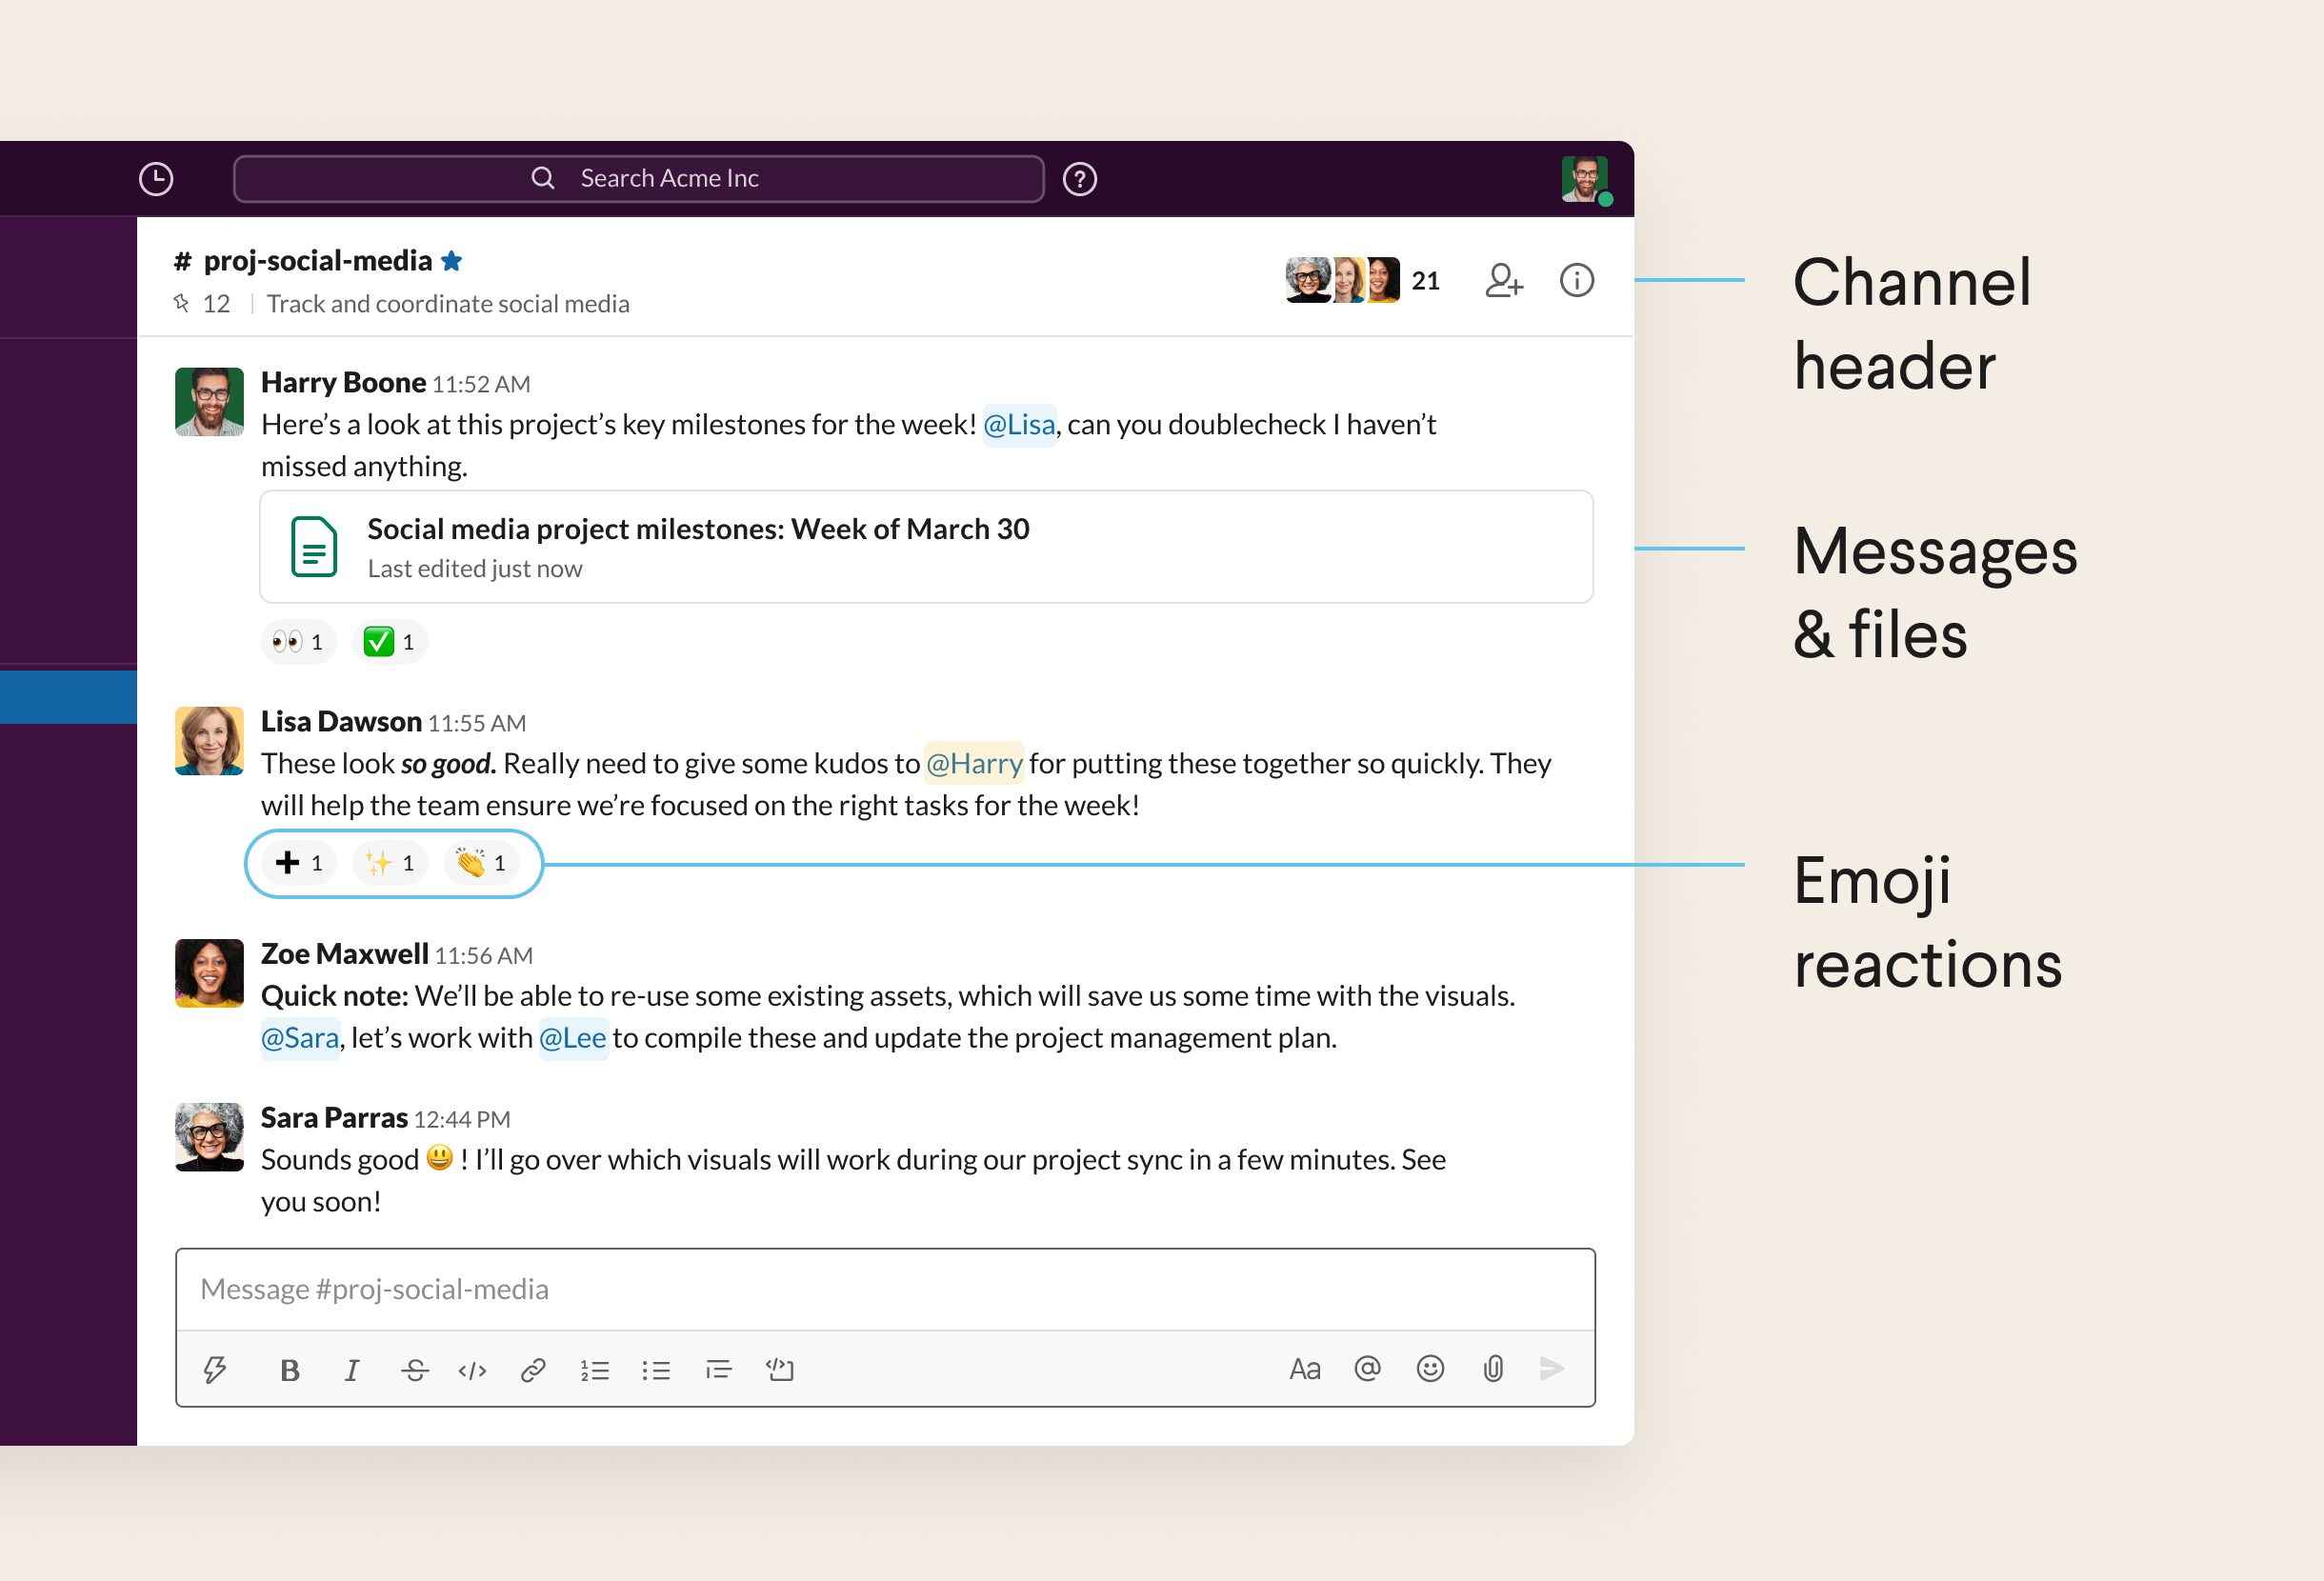 A conversation in a Slack channel